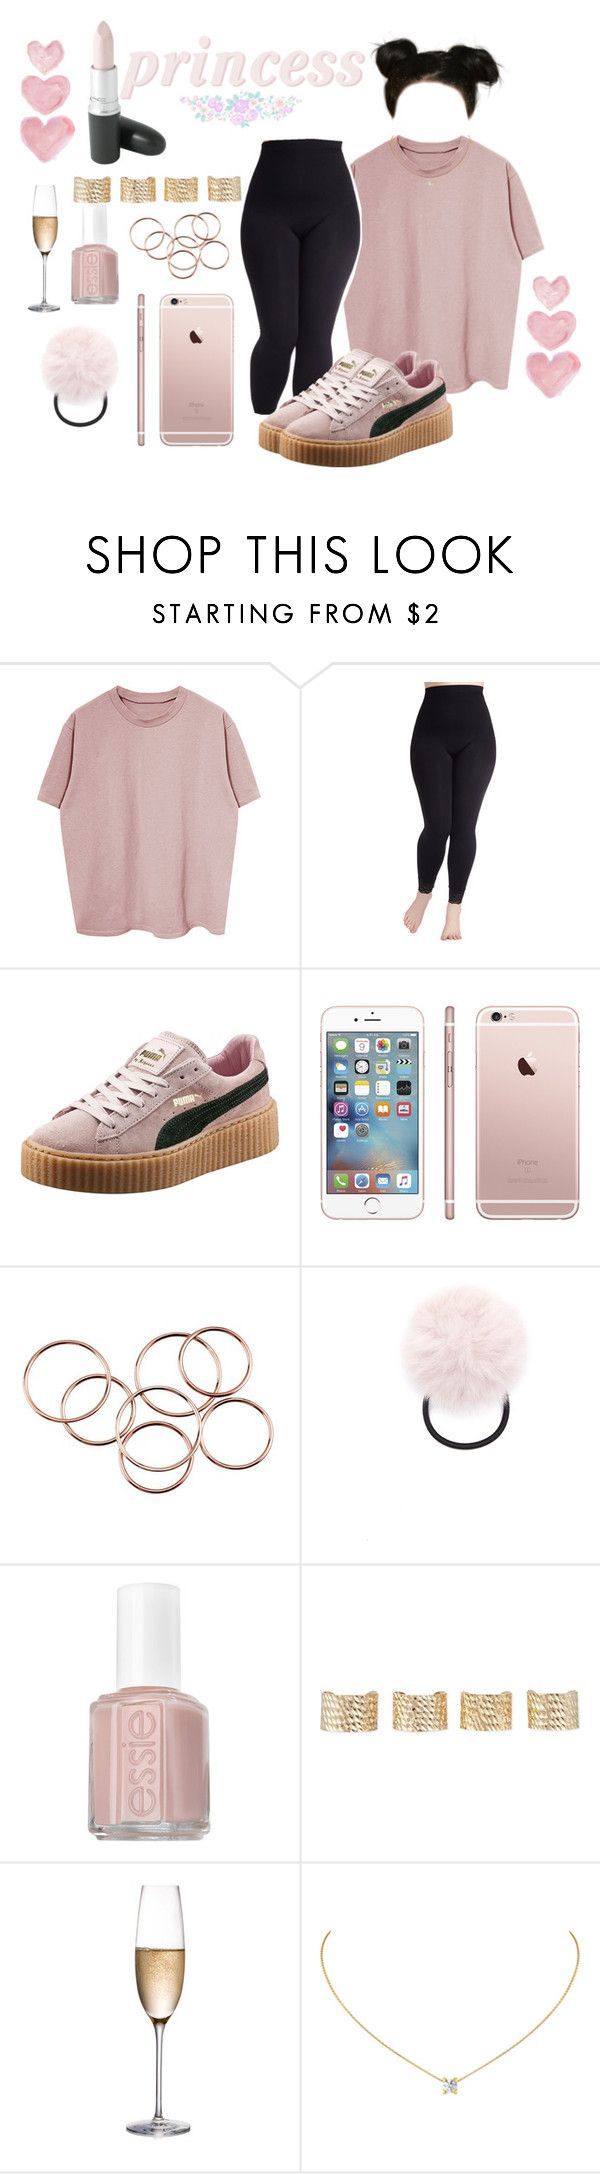 """""""Overtime"""" by princessfilthy ❤ liked on Polyvore featuring Puma, Forever 21, Essie, Maison Margiela, Rogaska, MAC Cosmetics, Shabby Chic and plus size clothing"""